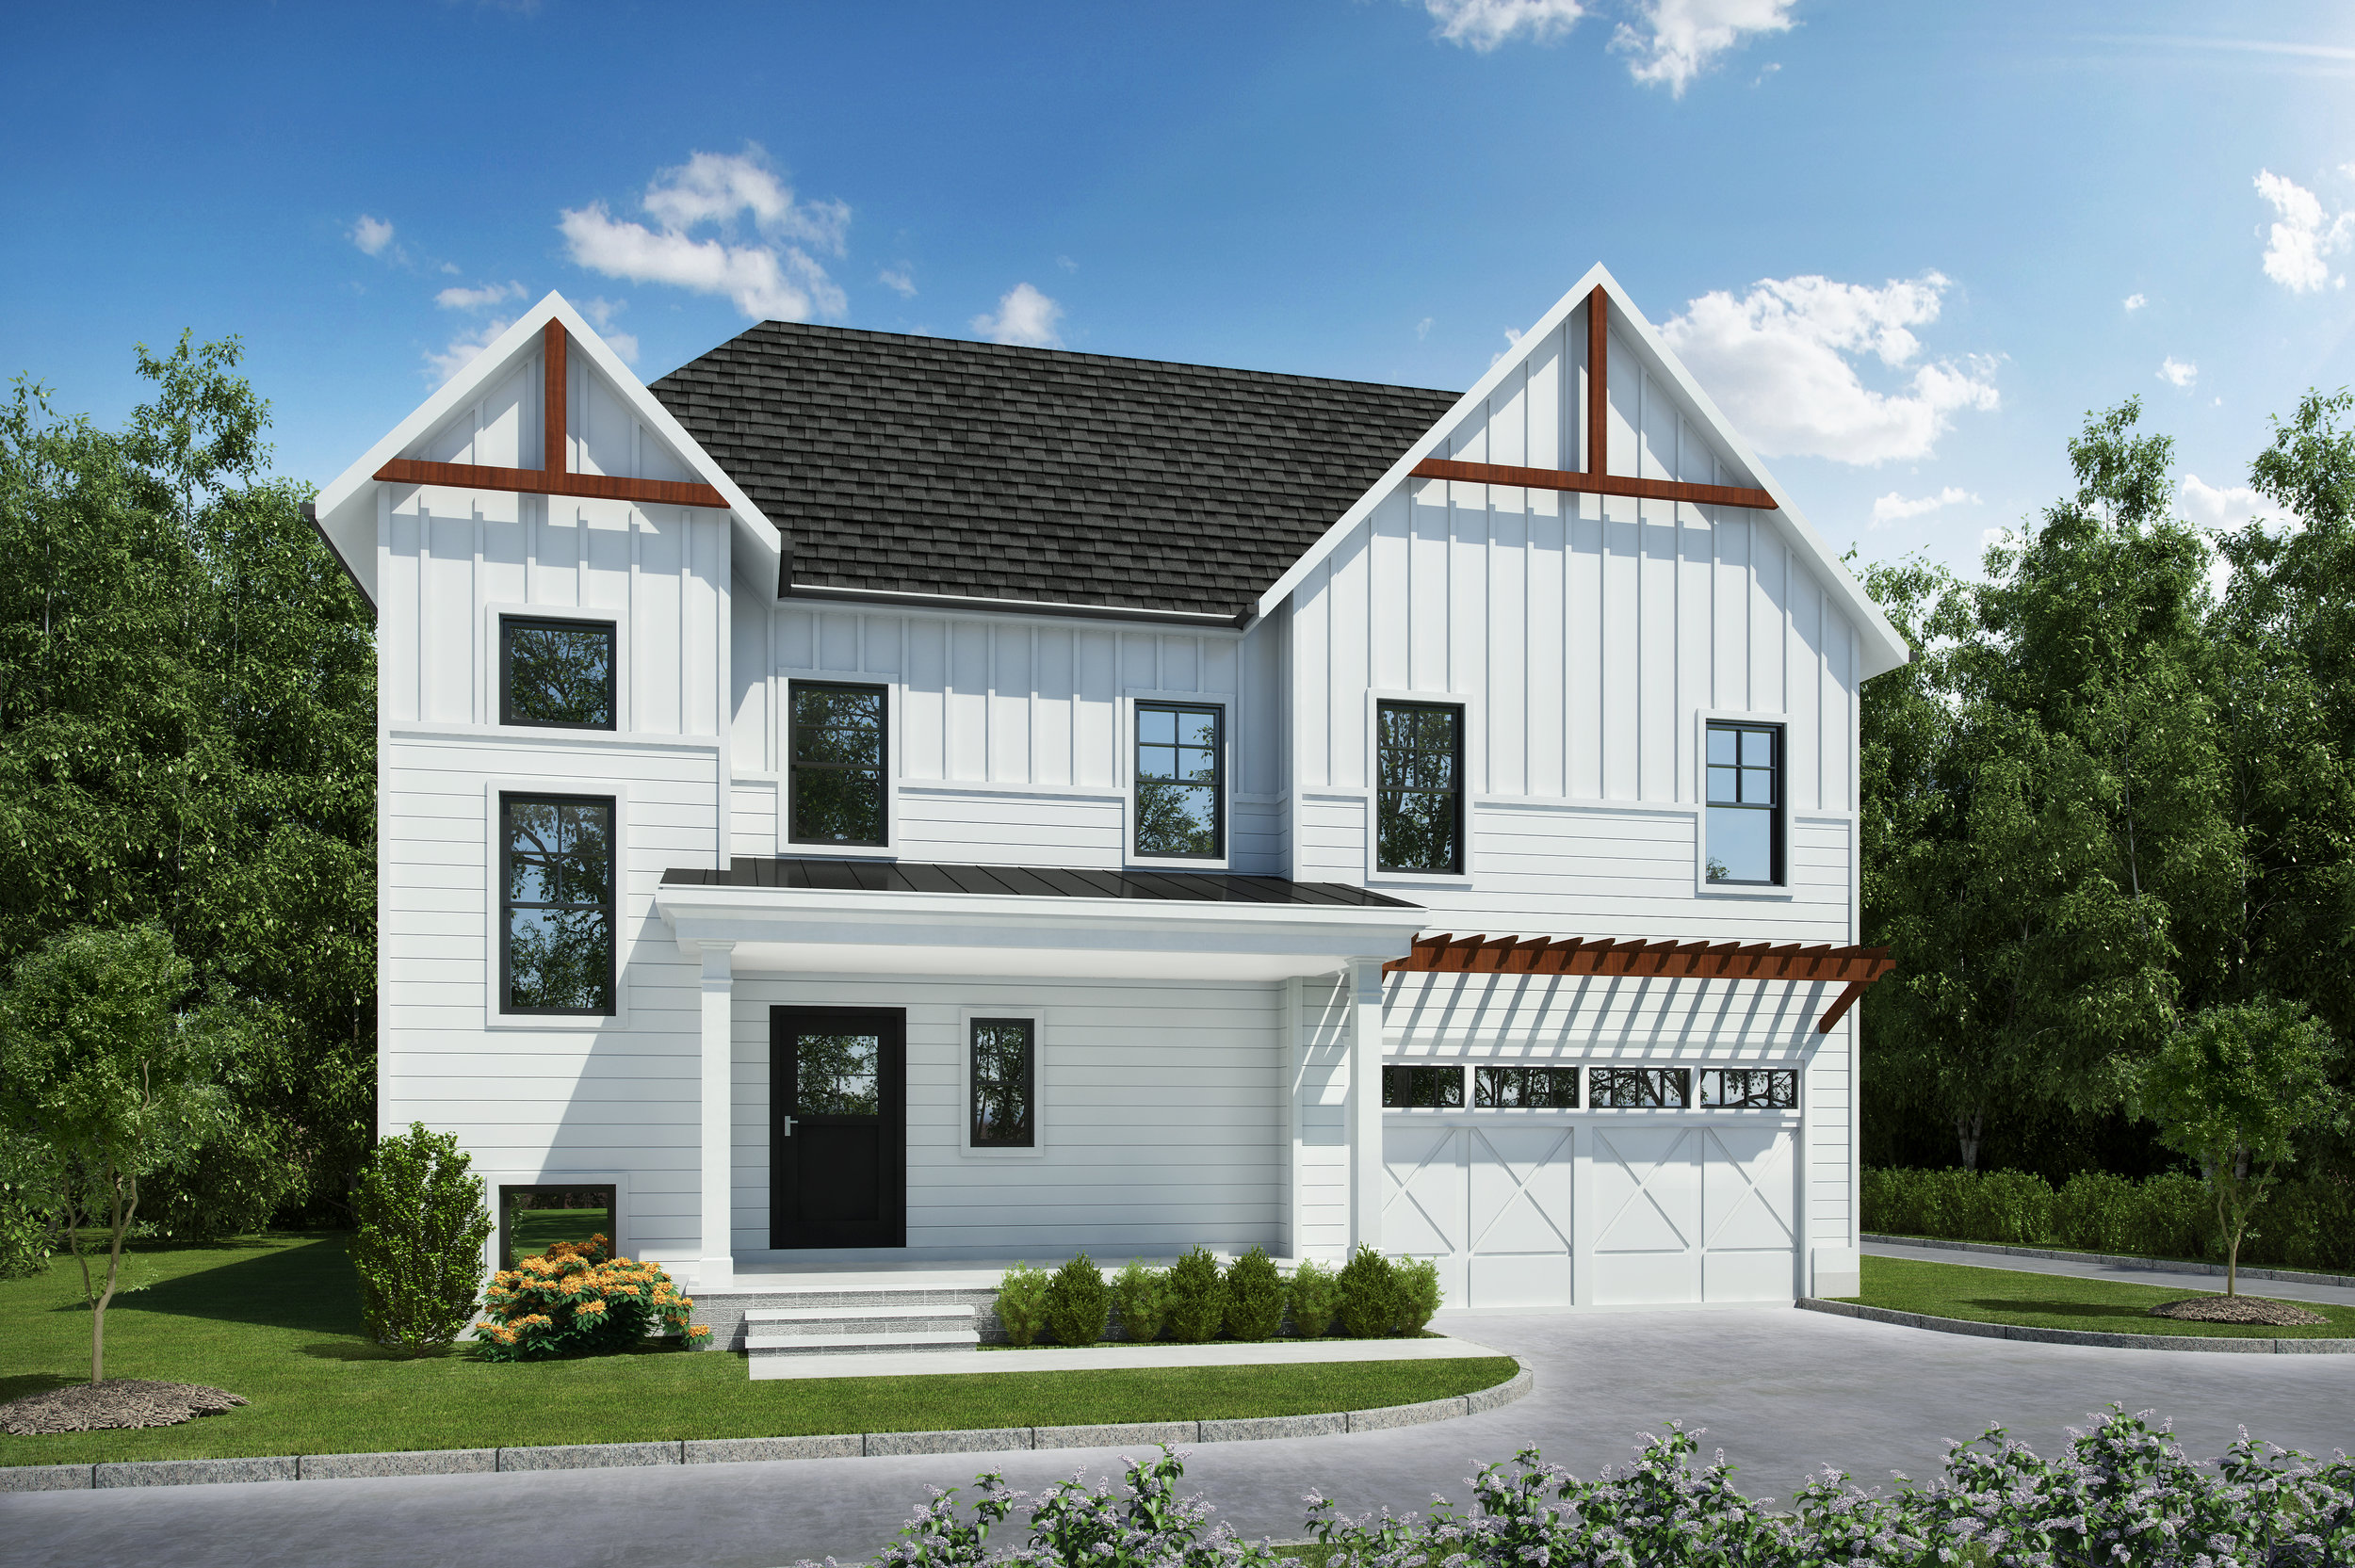 SPRING 2020: 2 LOTS!!! 601 & 603 Ritchie Ave. Silver Spring, MD